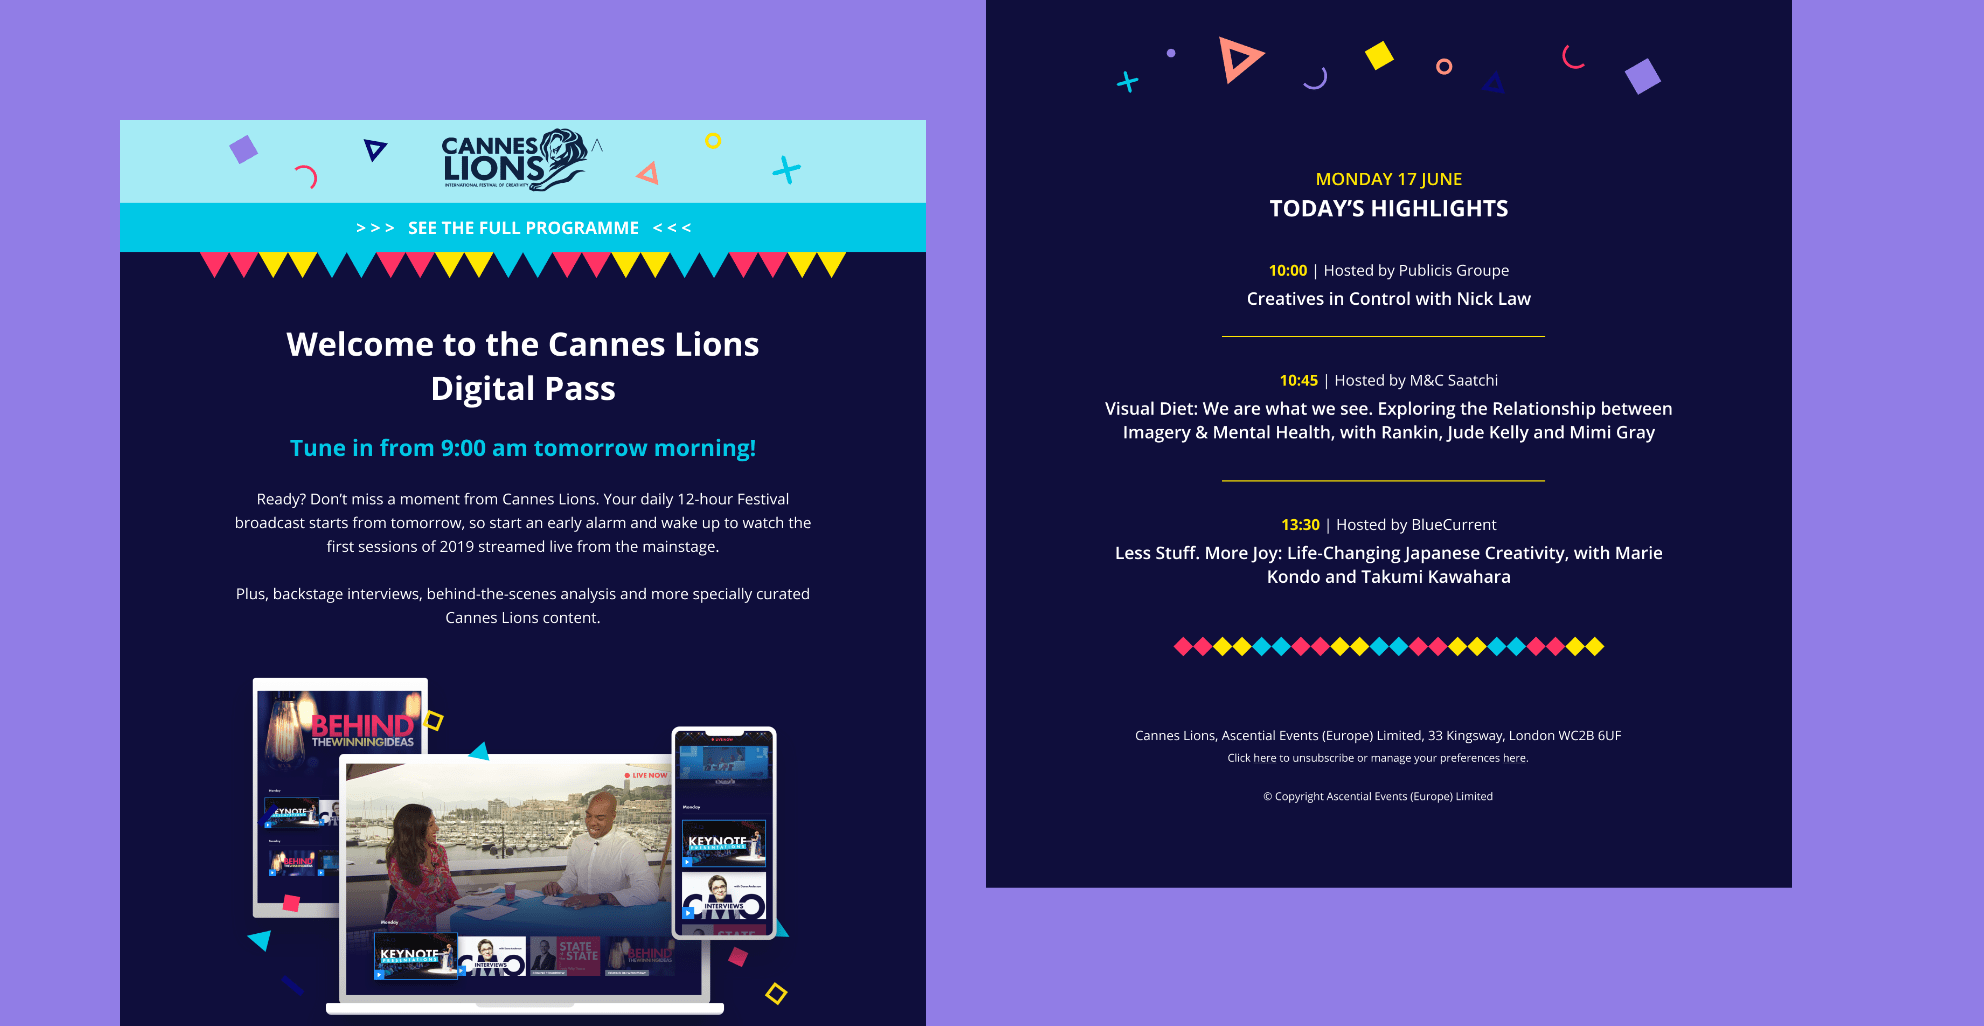 Cannes Lions email layout